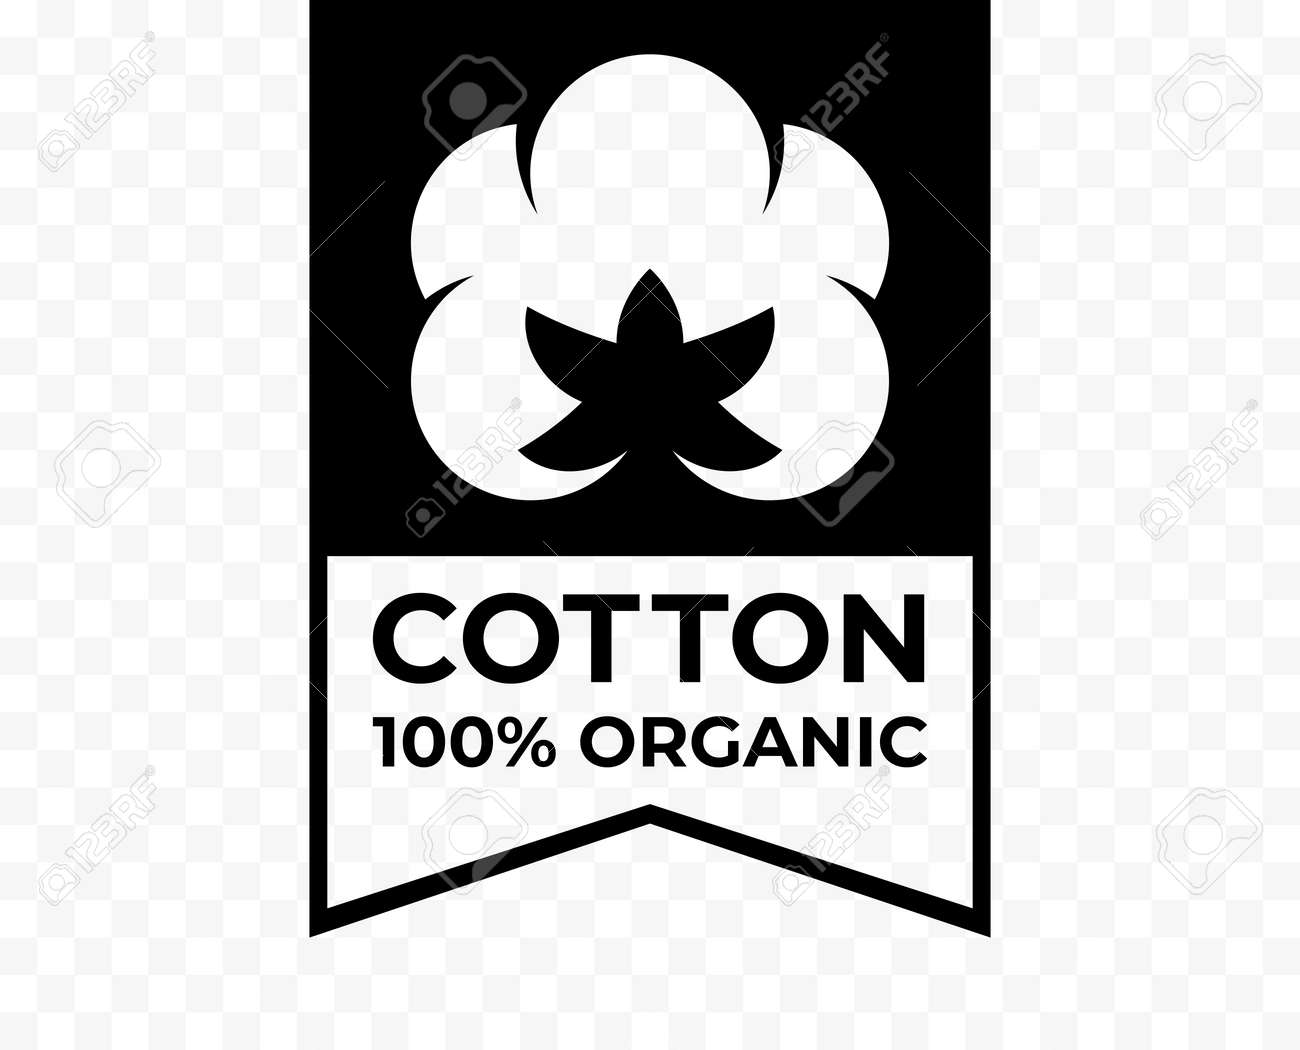 Cotton 100% organic tag, natural fabric logo icon, vector cotton flower quality certificate label - 163822681